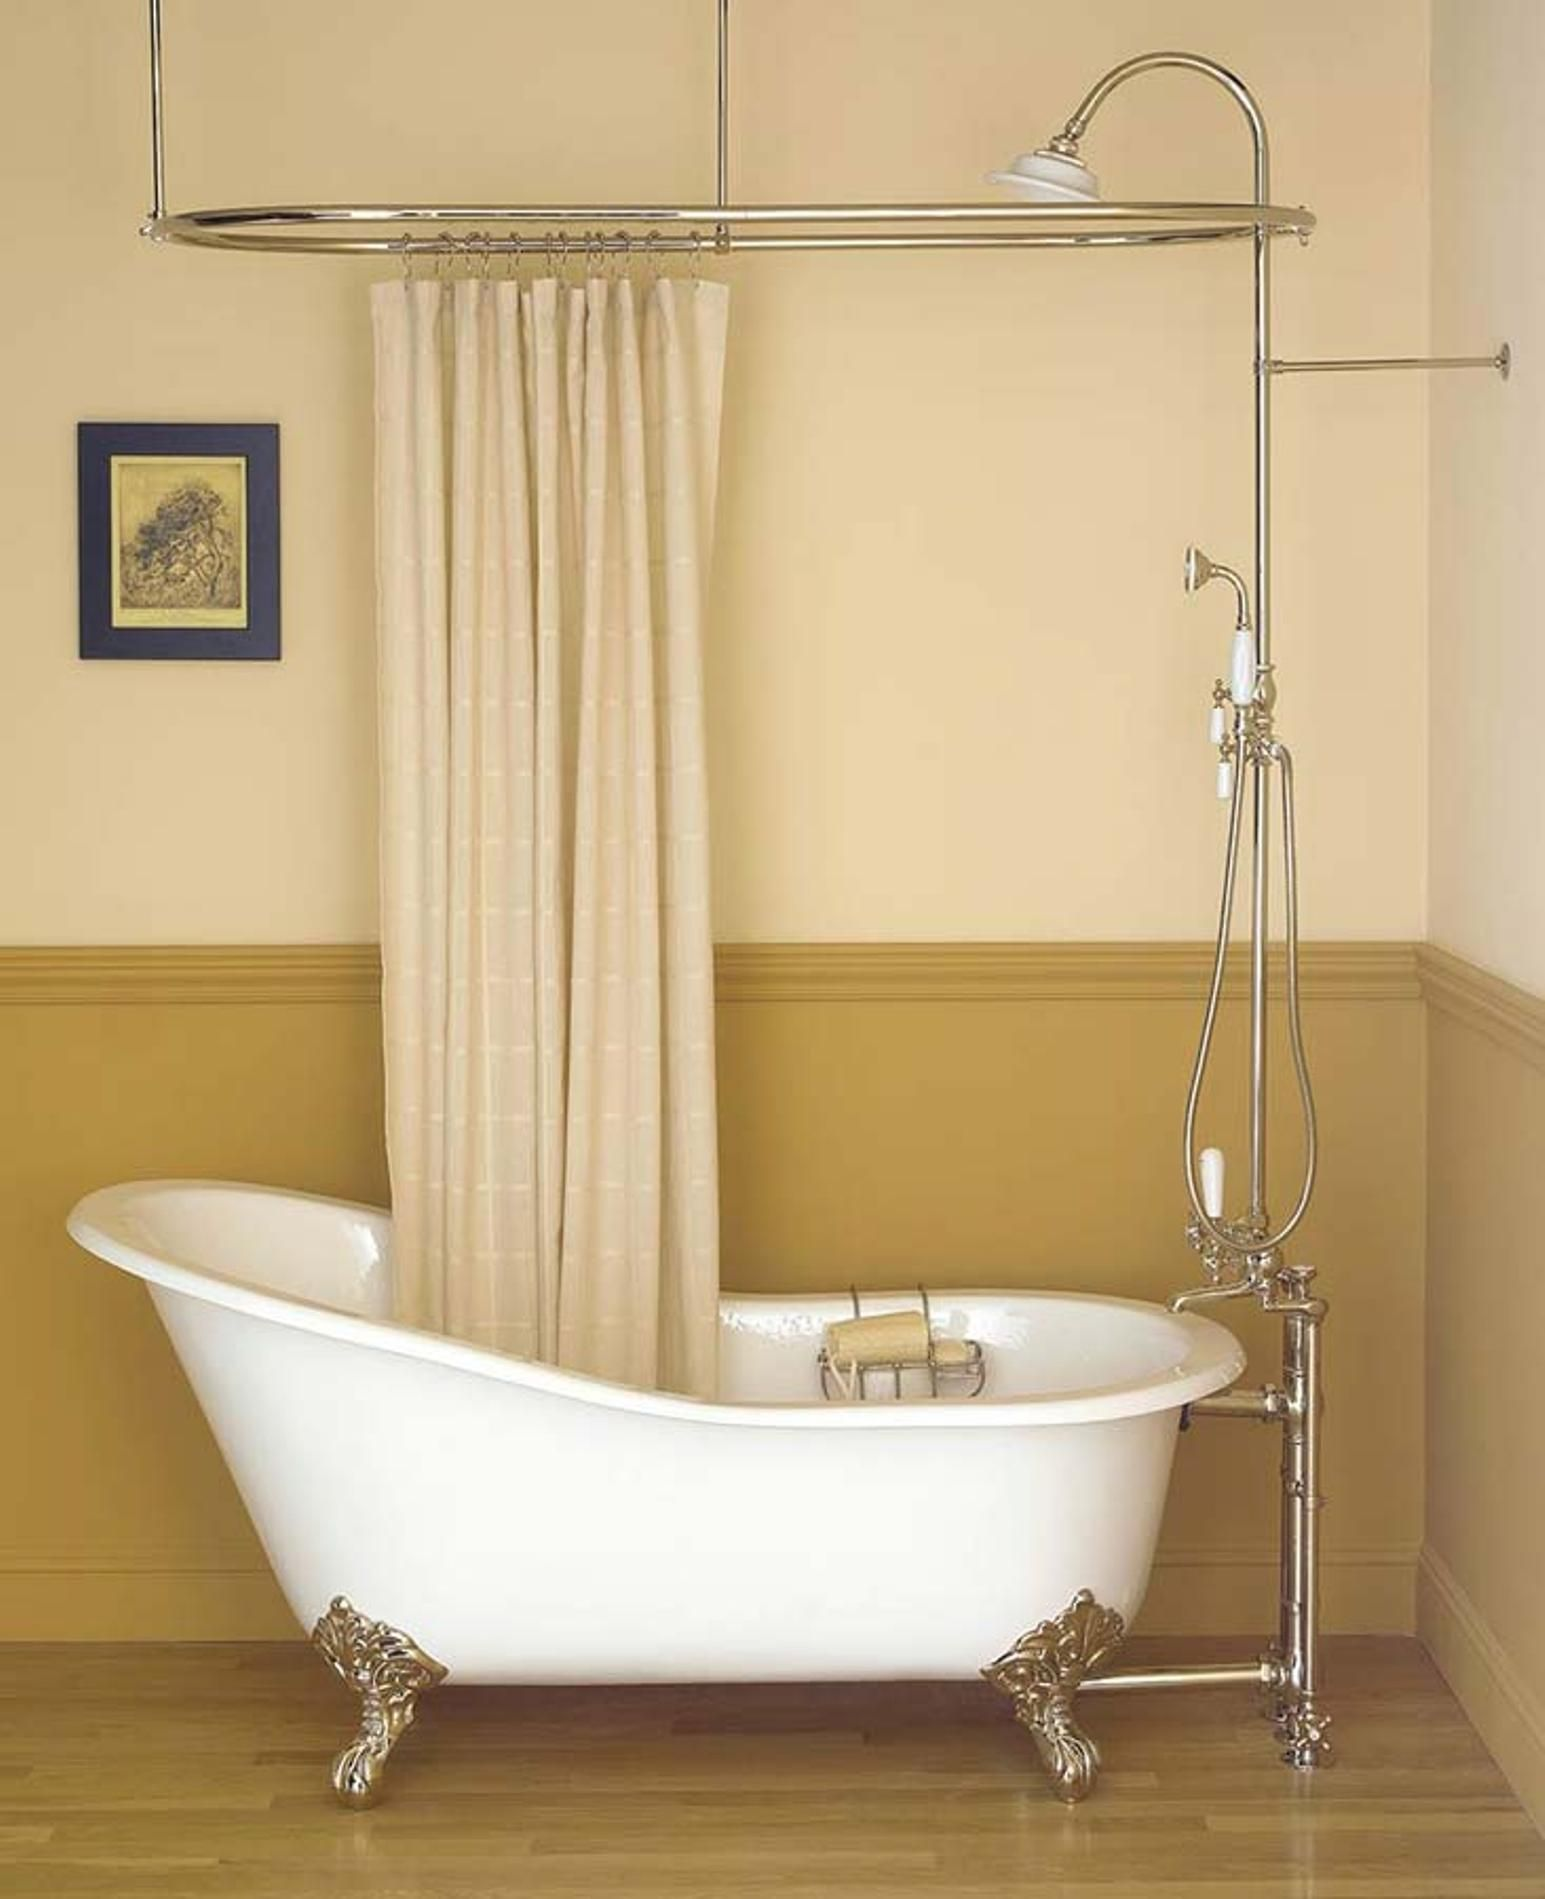 Freestanding Tub With Shower And Shower Curtain Rod Ljoy Decor